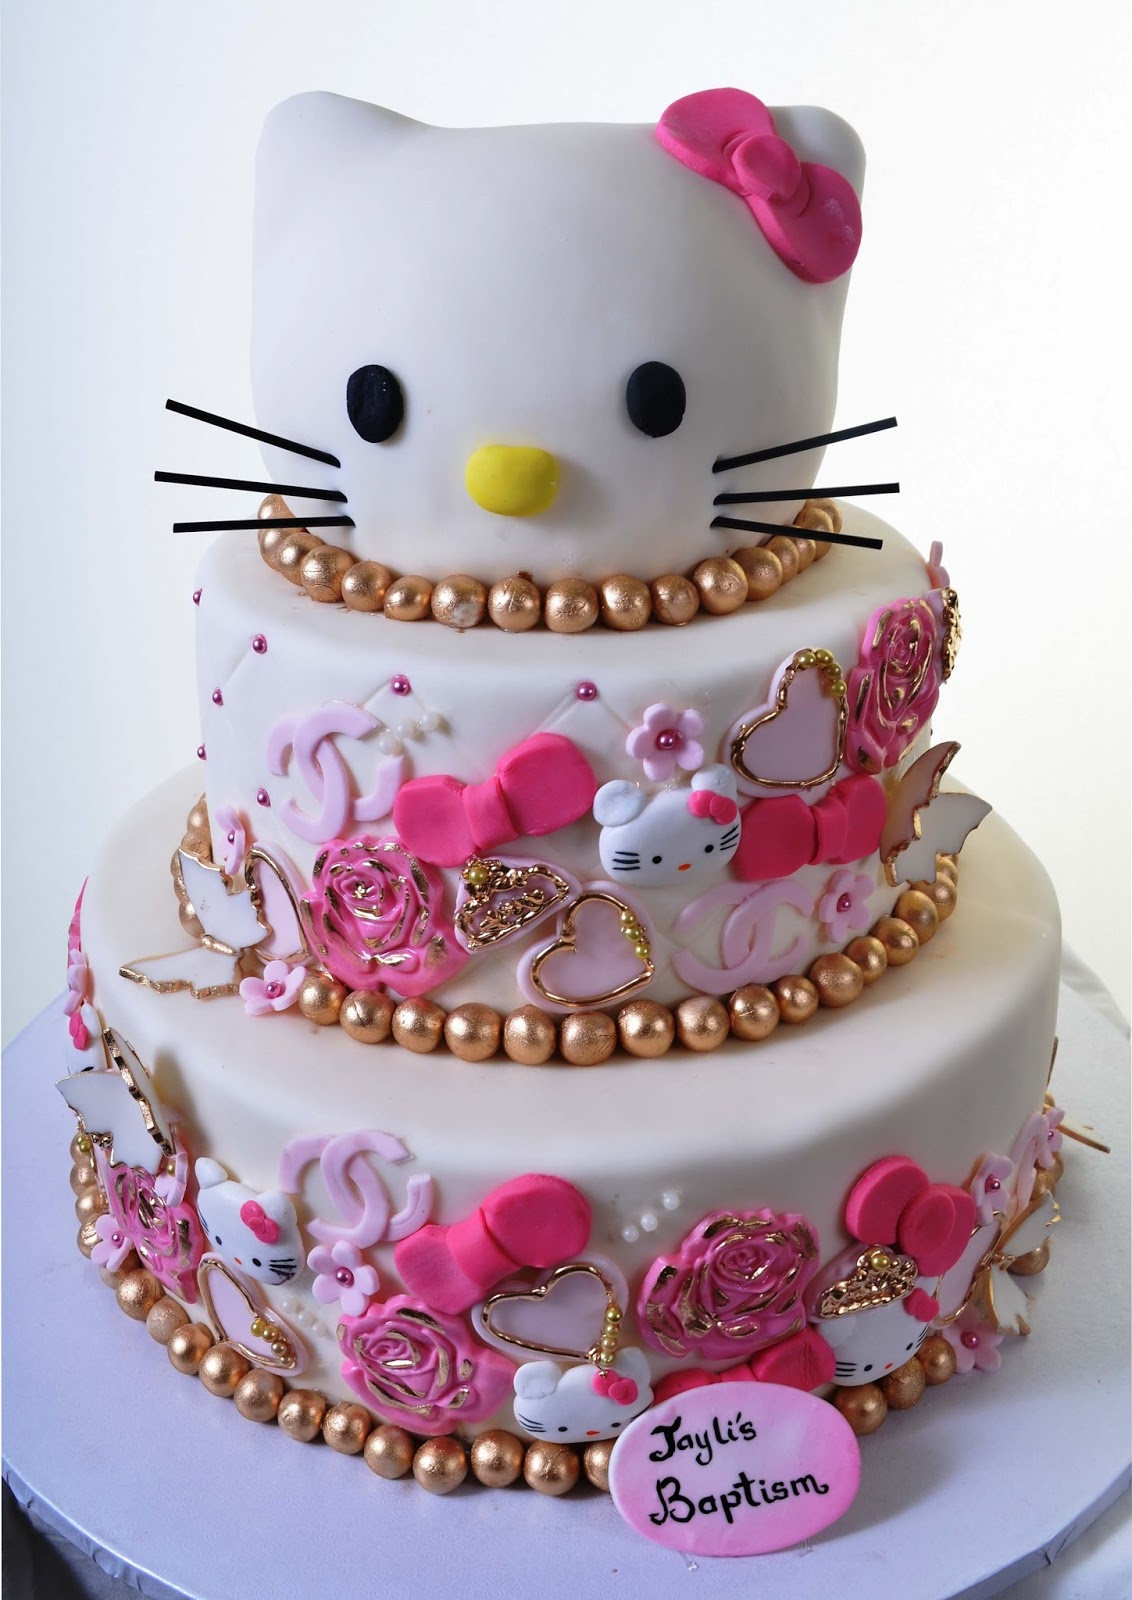 10 Hello Kitty Cake Decorations Ideas CAKE DESIGN AND ...